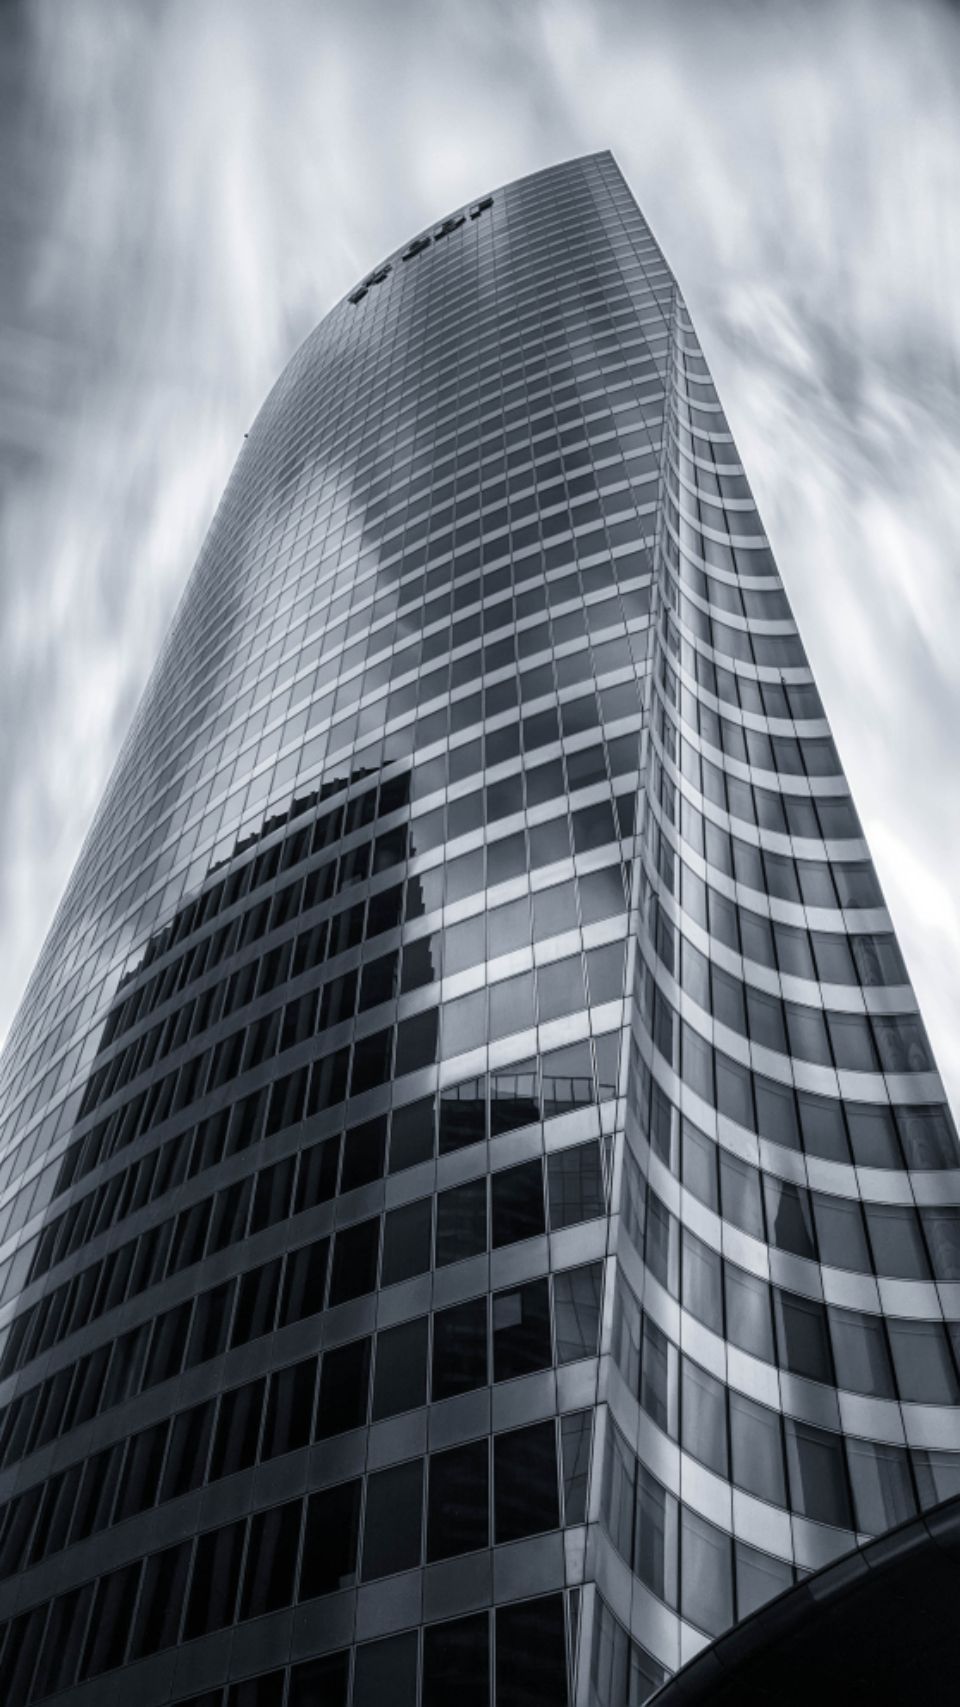 Free stock photo of skyscaper office building